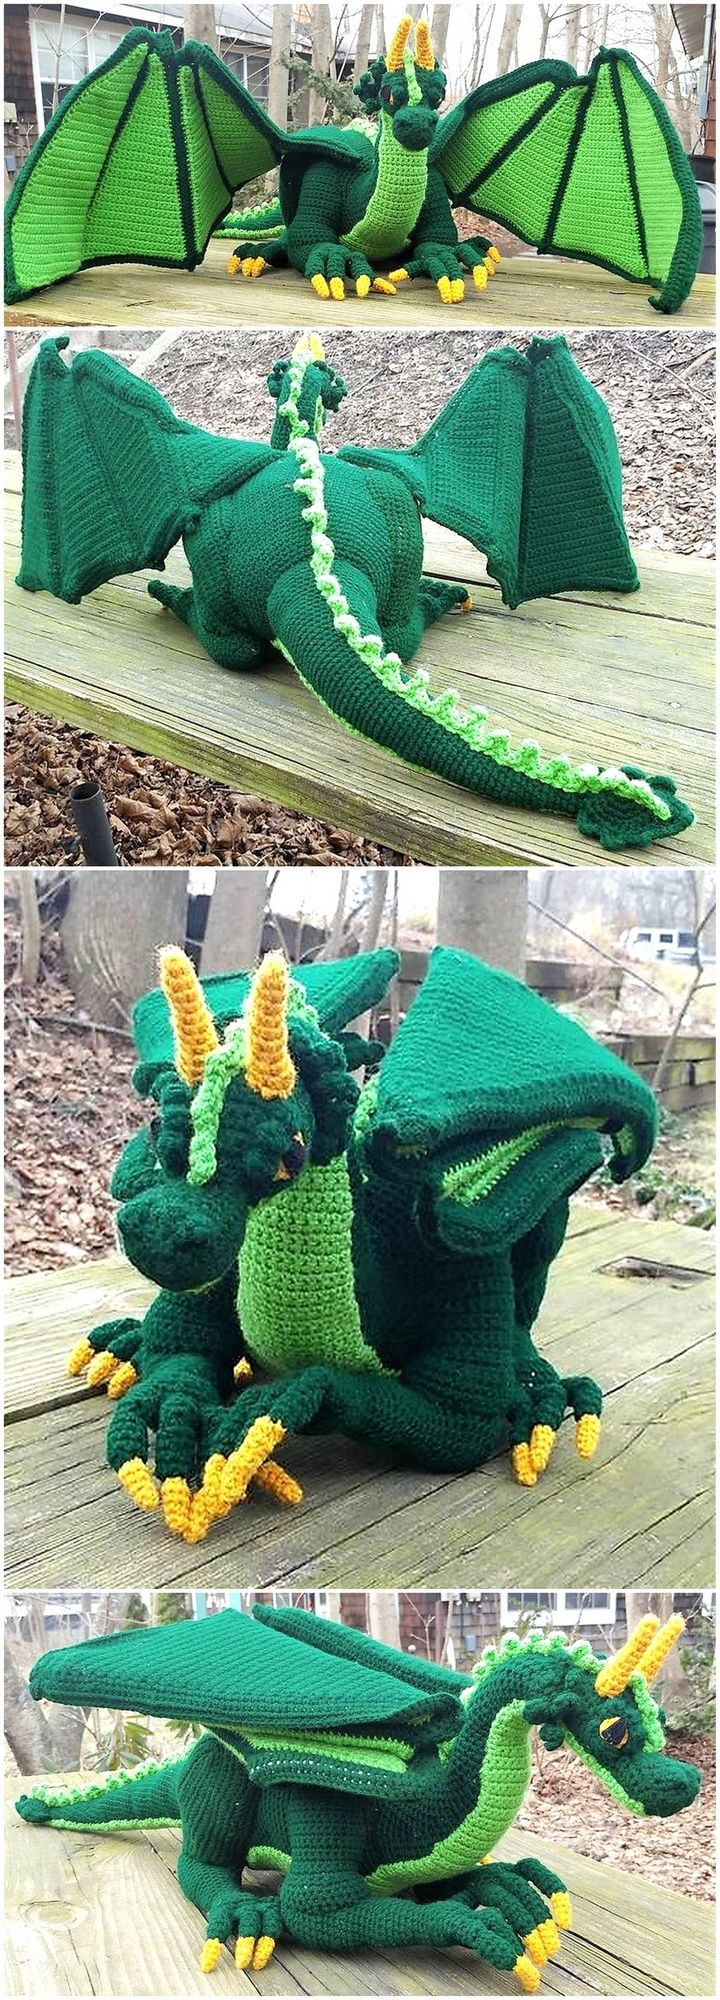 Now come to a huge crocheted Amigurumi, the creator had surely spent many days making it and it is looking amazing. The color combination of the dragon is perfect; it is a good idea to go for if the person wants something unique to decorate the kid's room.